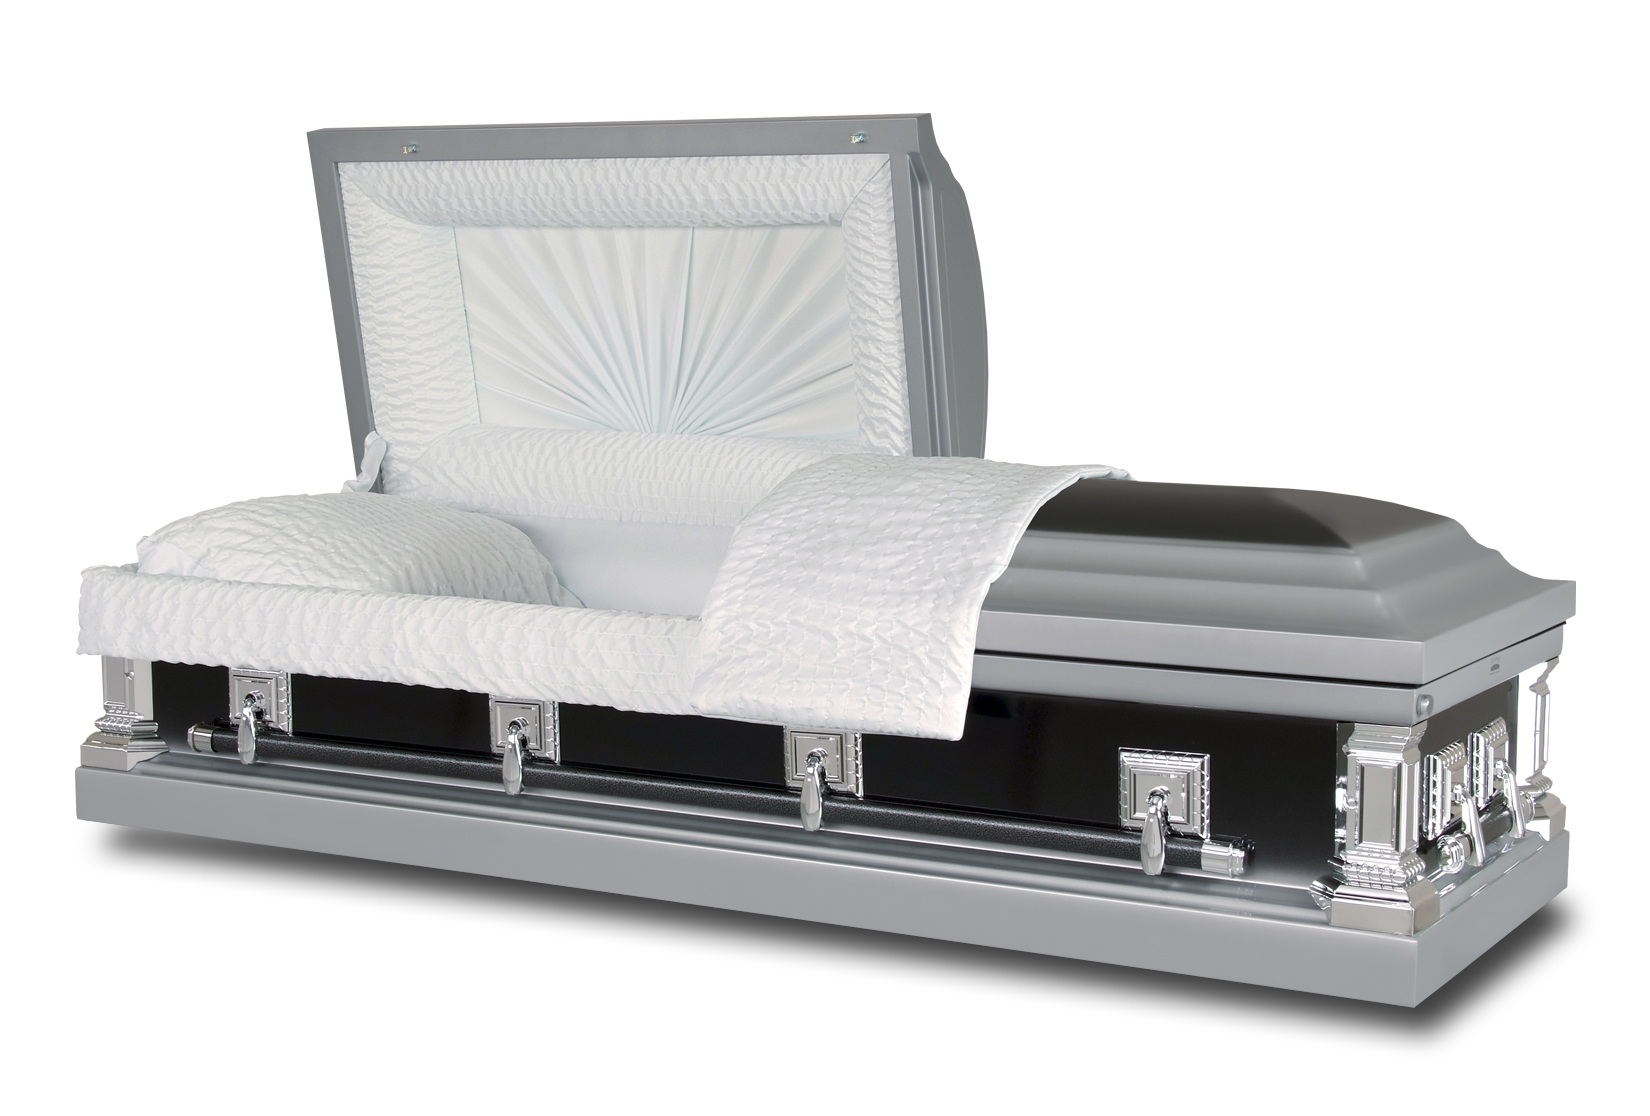 METAL CASKETS - PRECIOUS METAL, 18 GAUGE AND 20 GAUGE